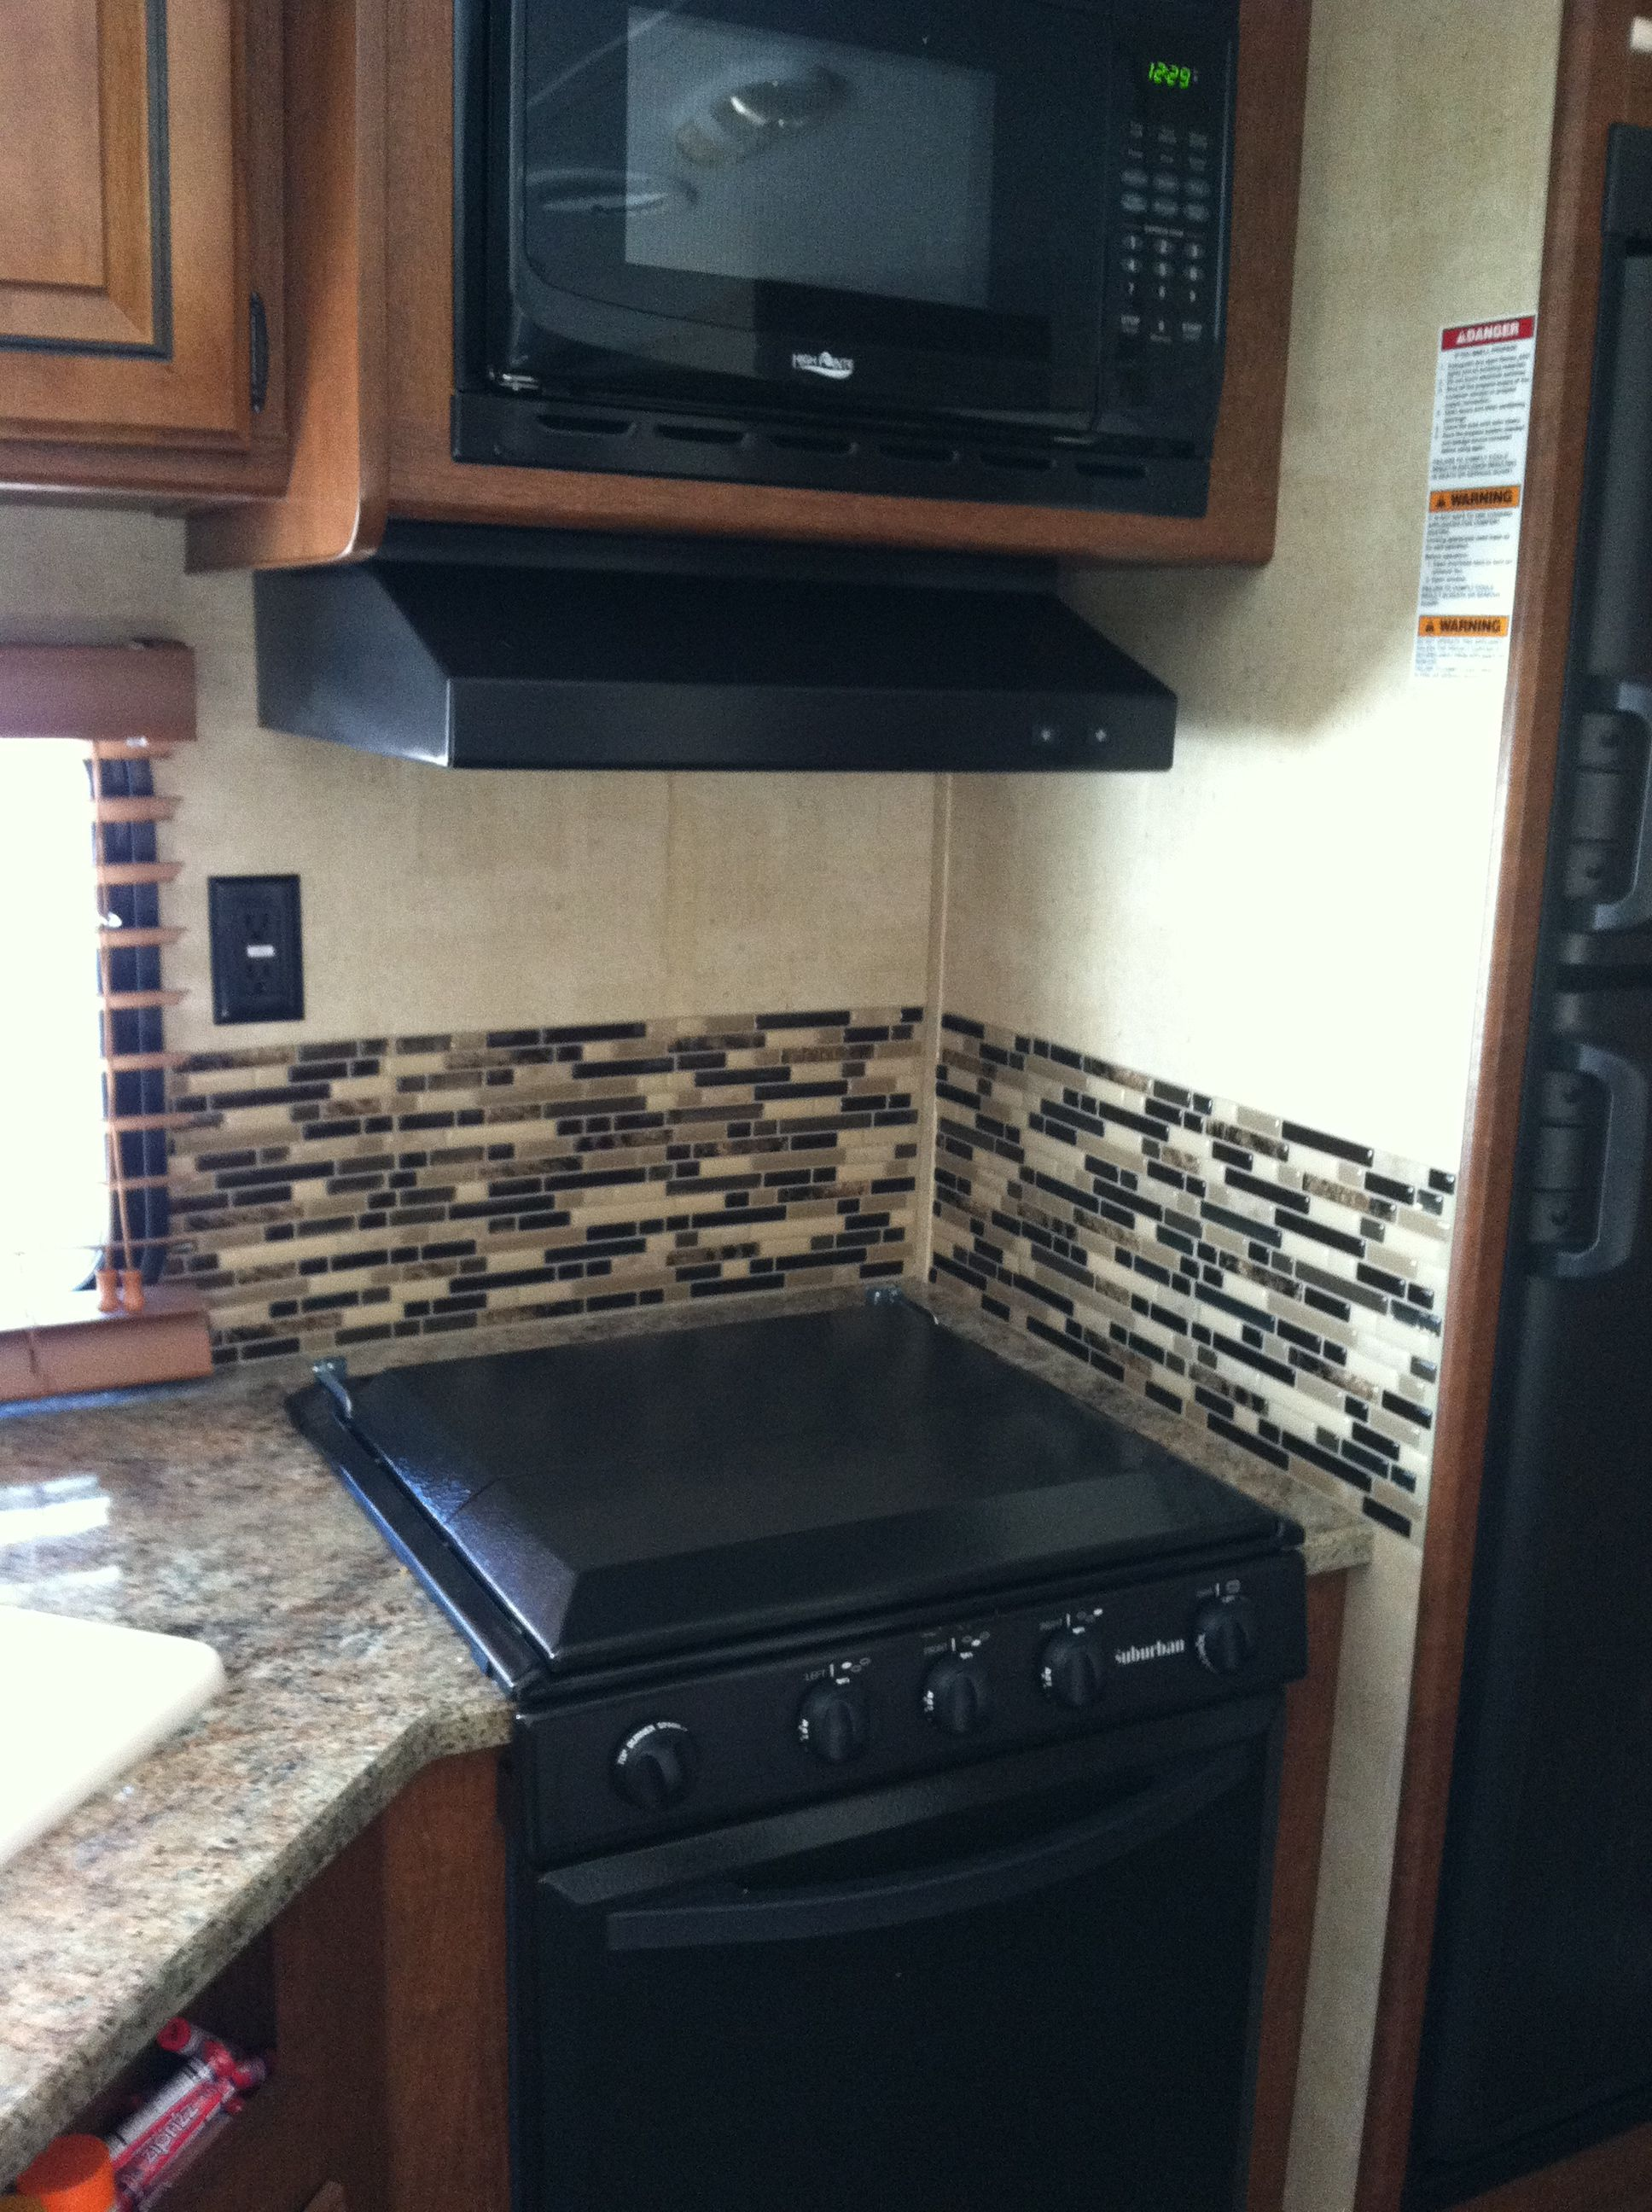 Rv Camping Replaced The Hideous Wallpaper Border With Peel And Stick Smart Tiles From Home